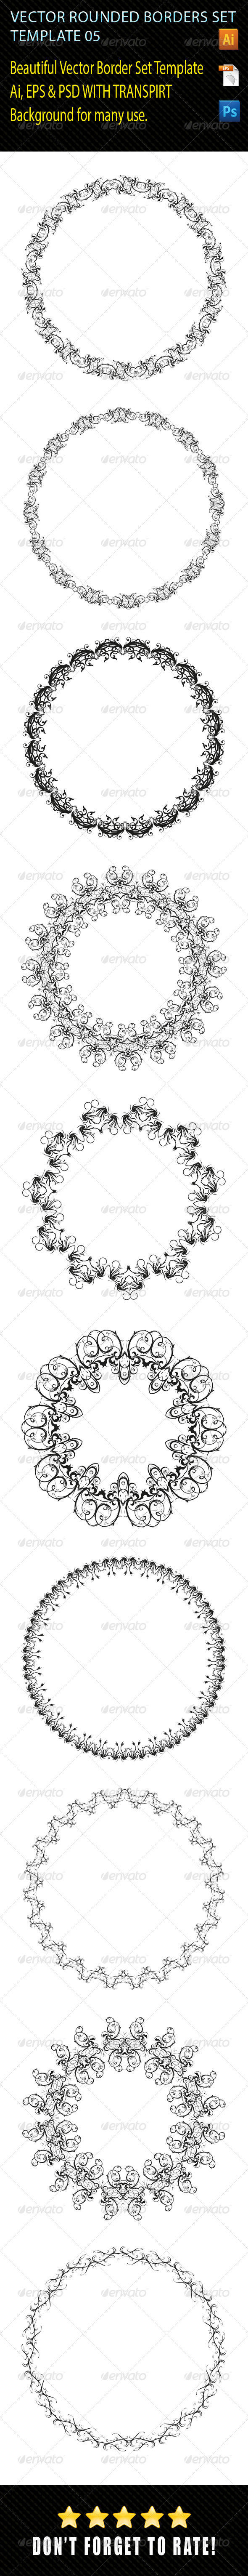 Rounded Borders Set 05